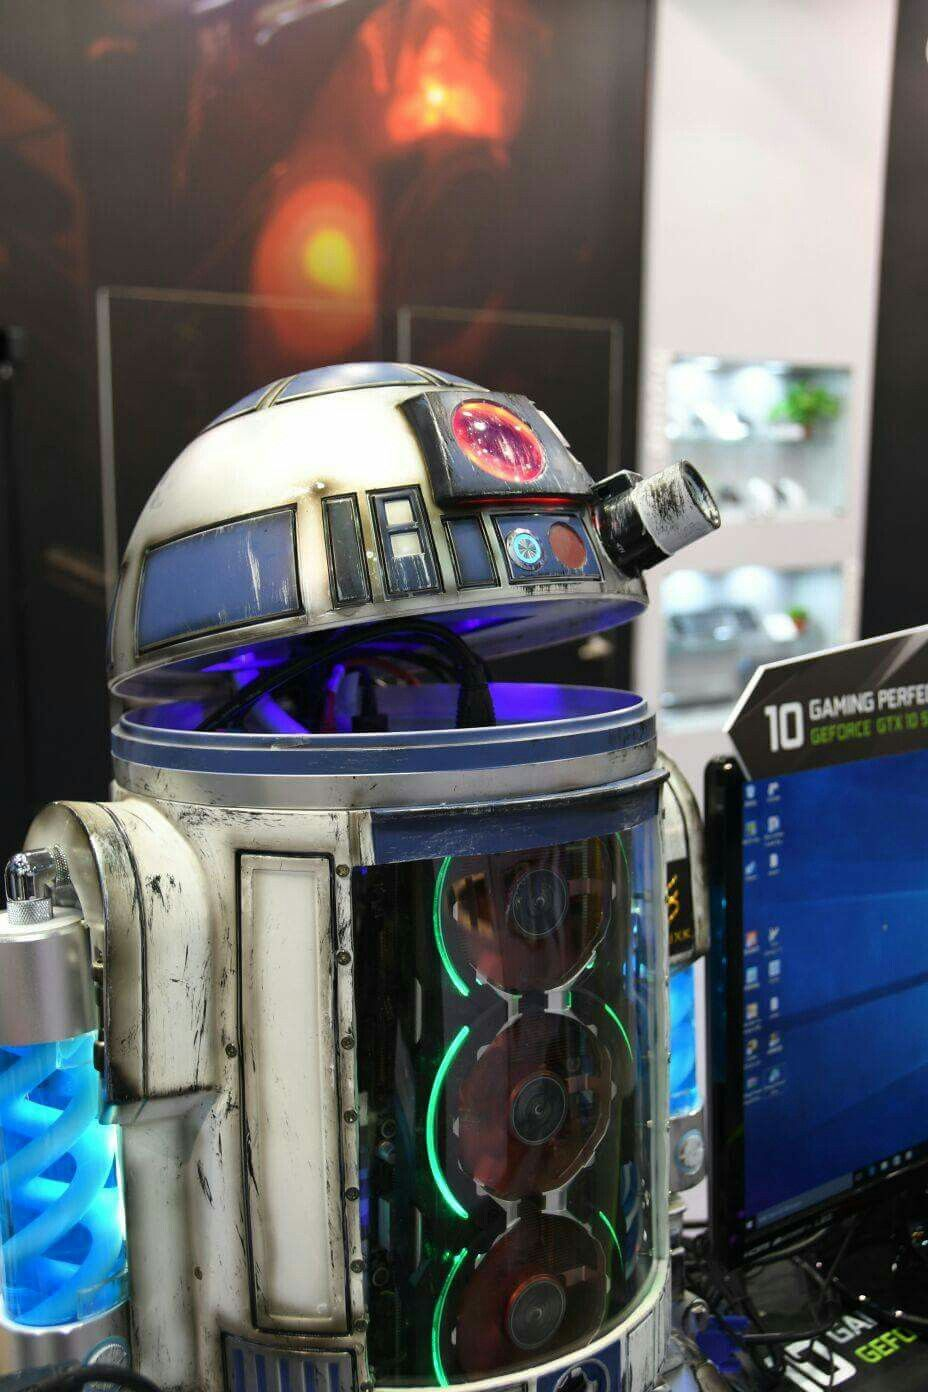 ROBOT THE PC  R2D2 STAR WARS  | Computers & Battle Stations